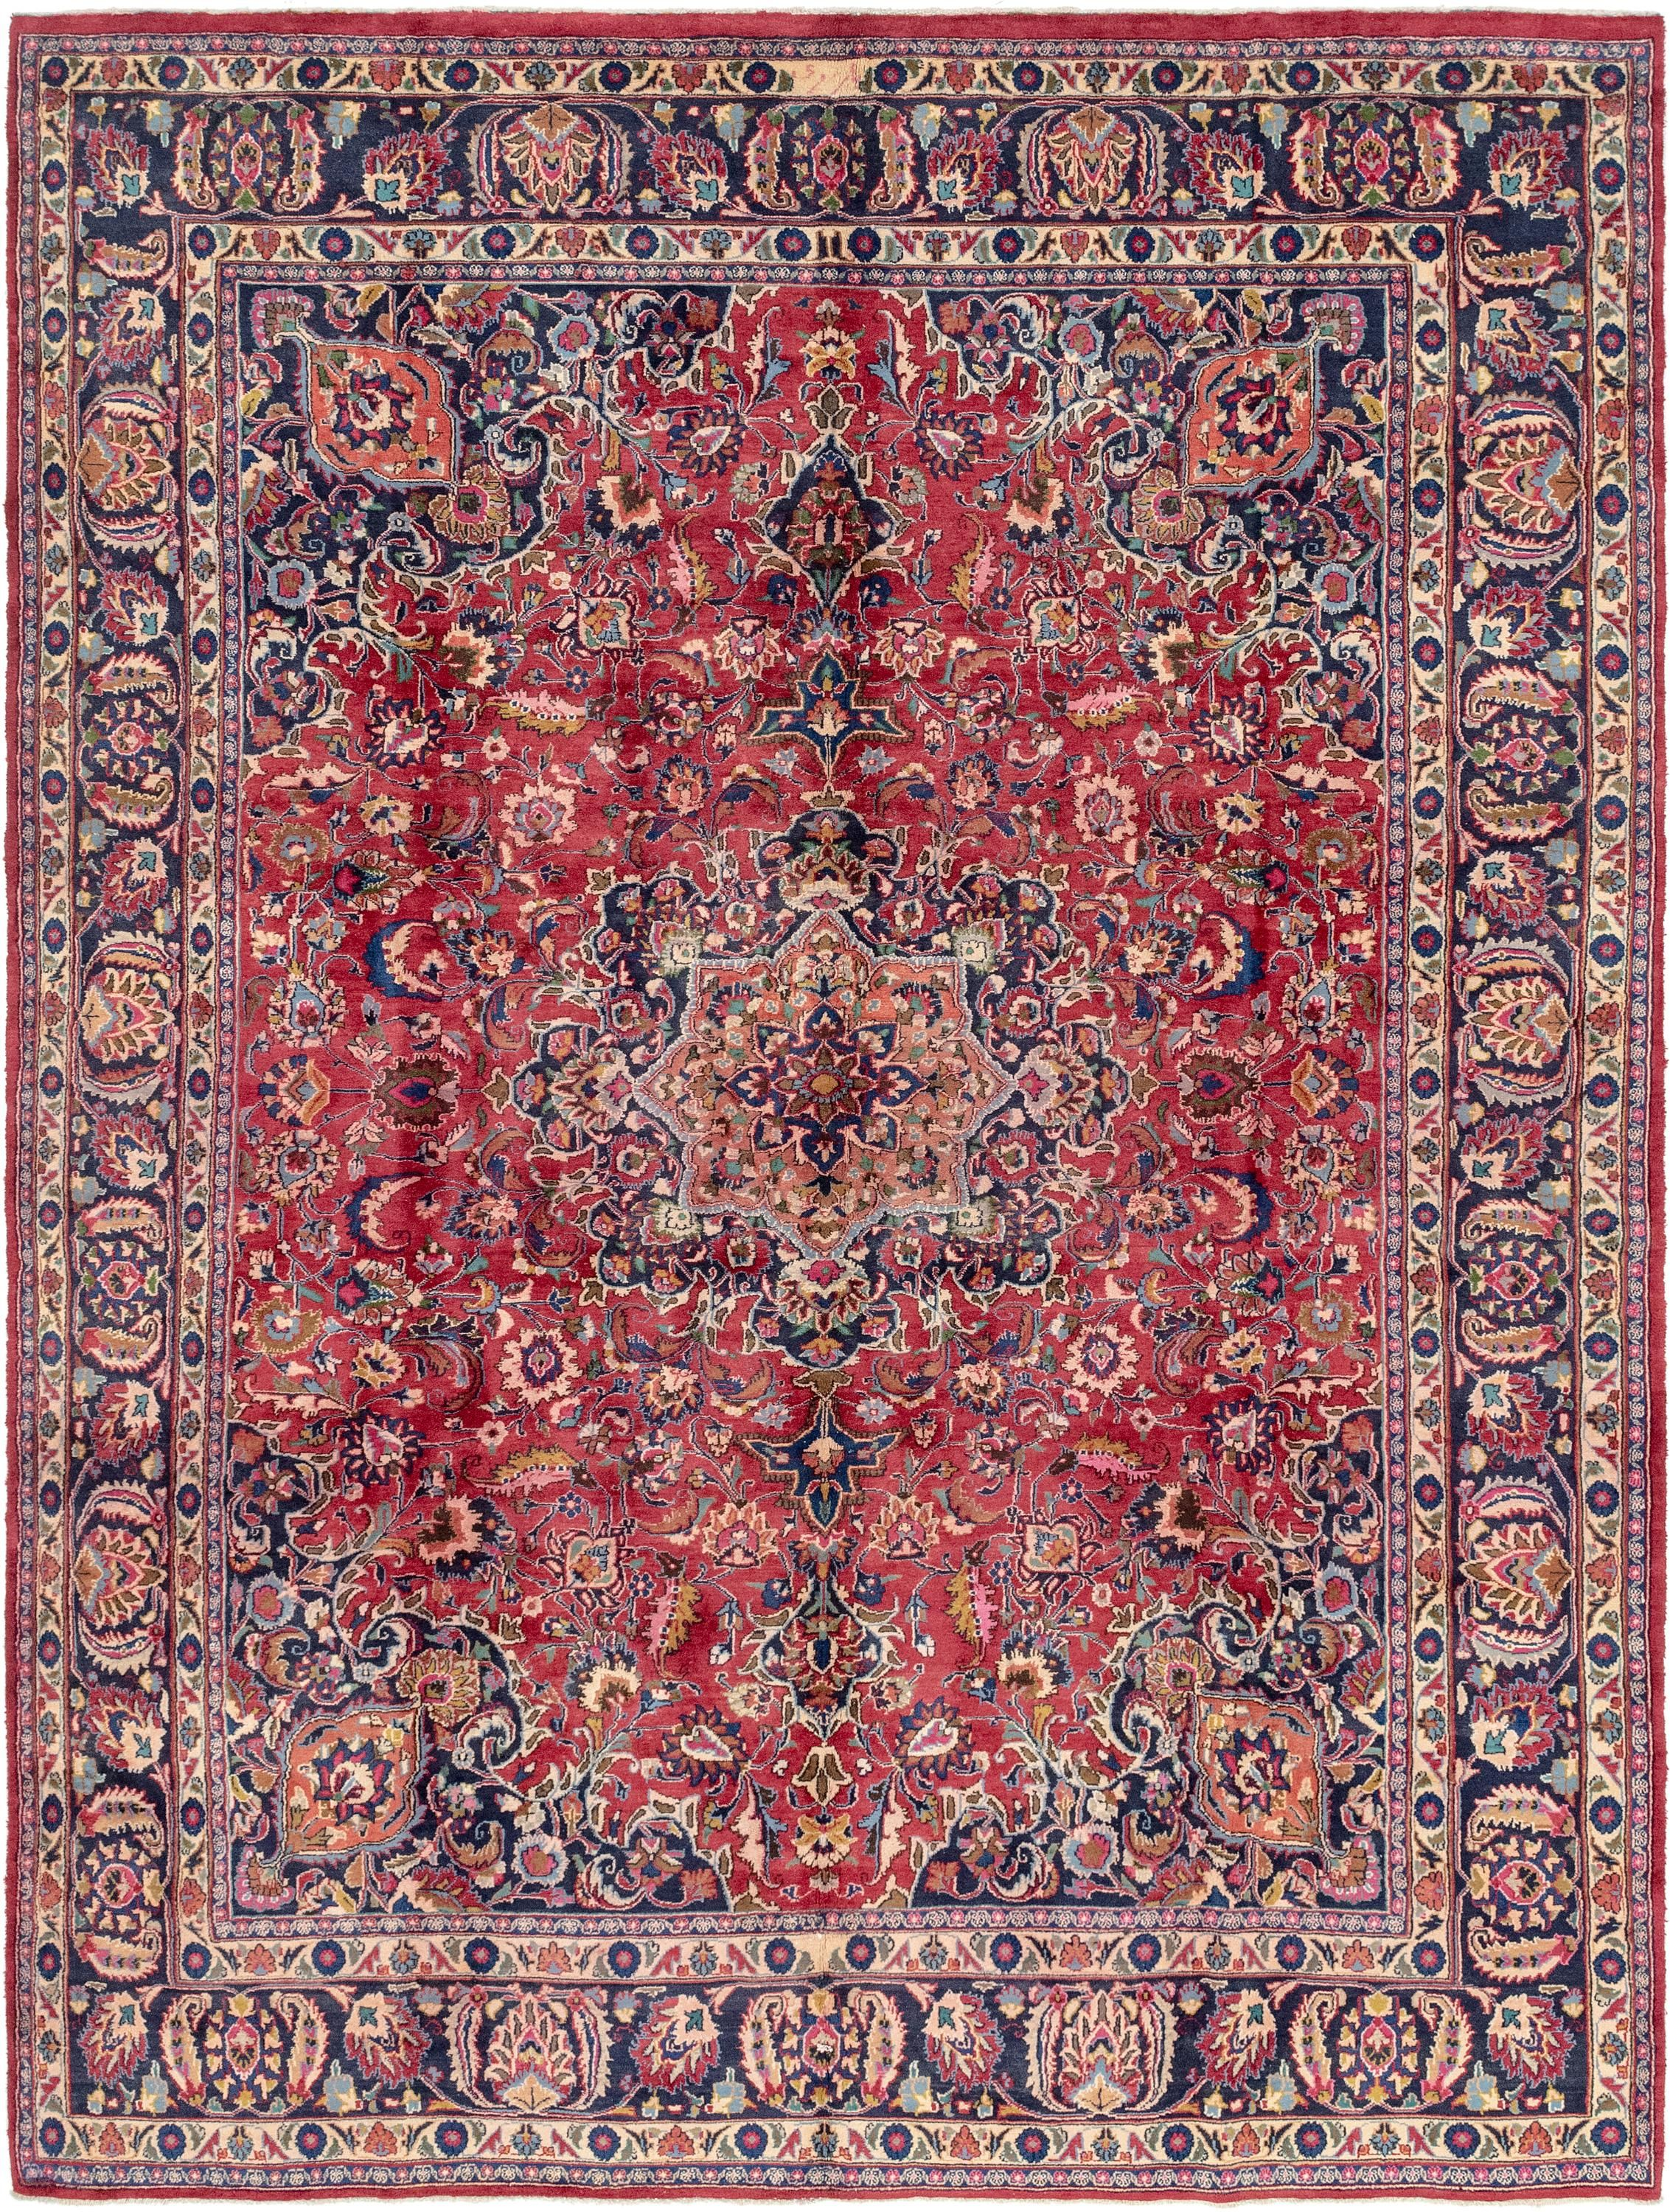 Red 9 8 X 13 Mashad Persian Rug Esalerugs Large Area Rugs Red Rugs Persian Rug